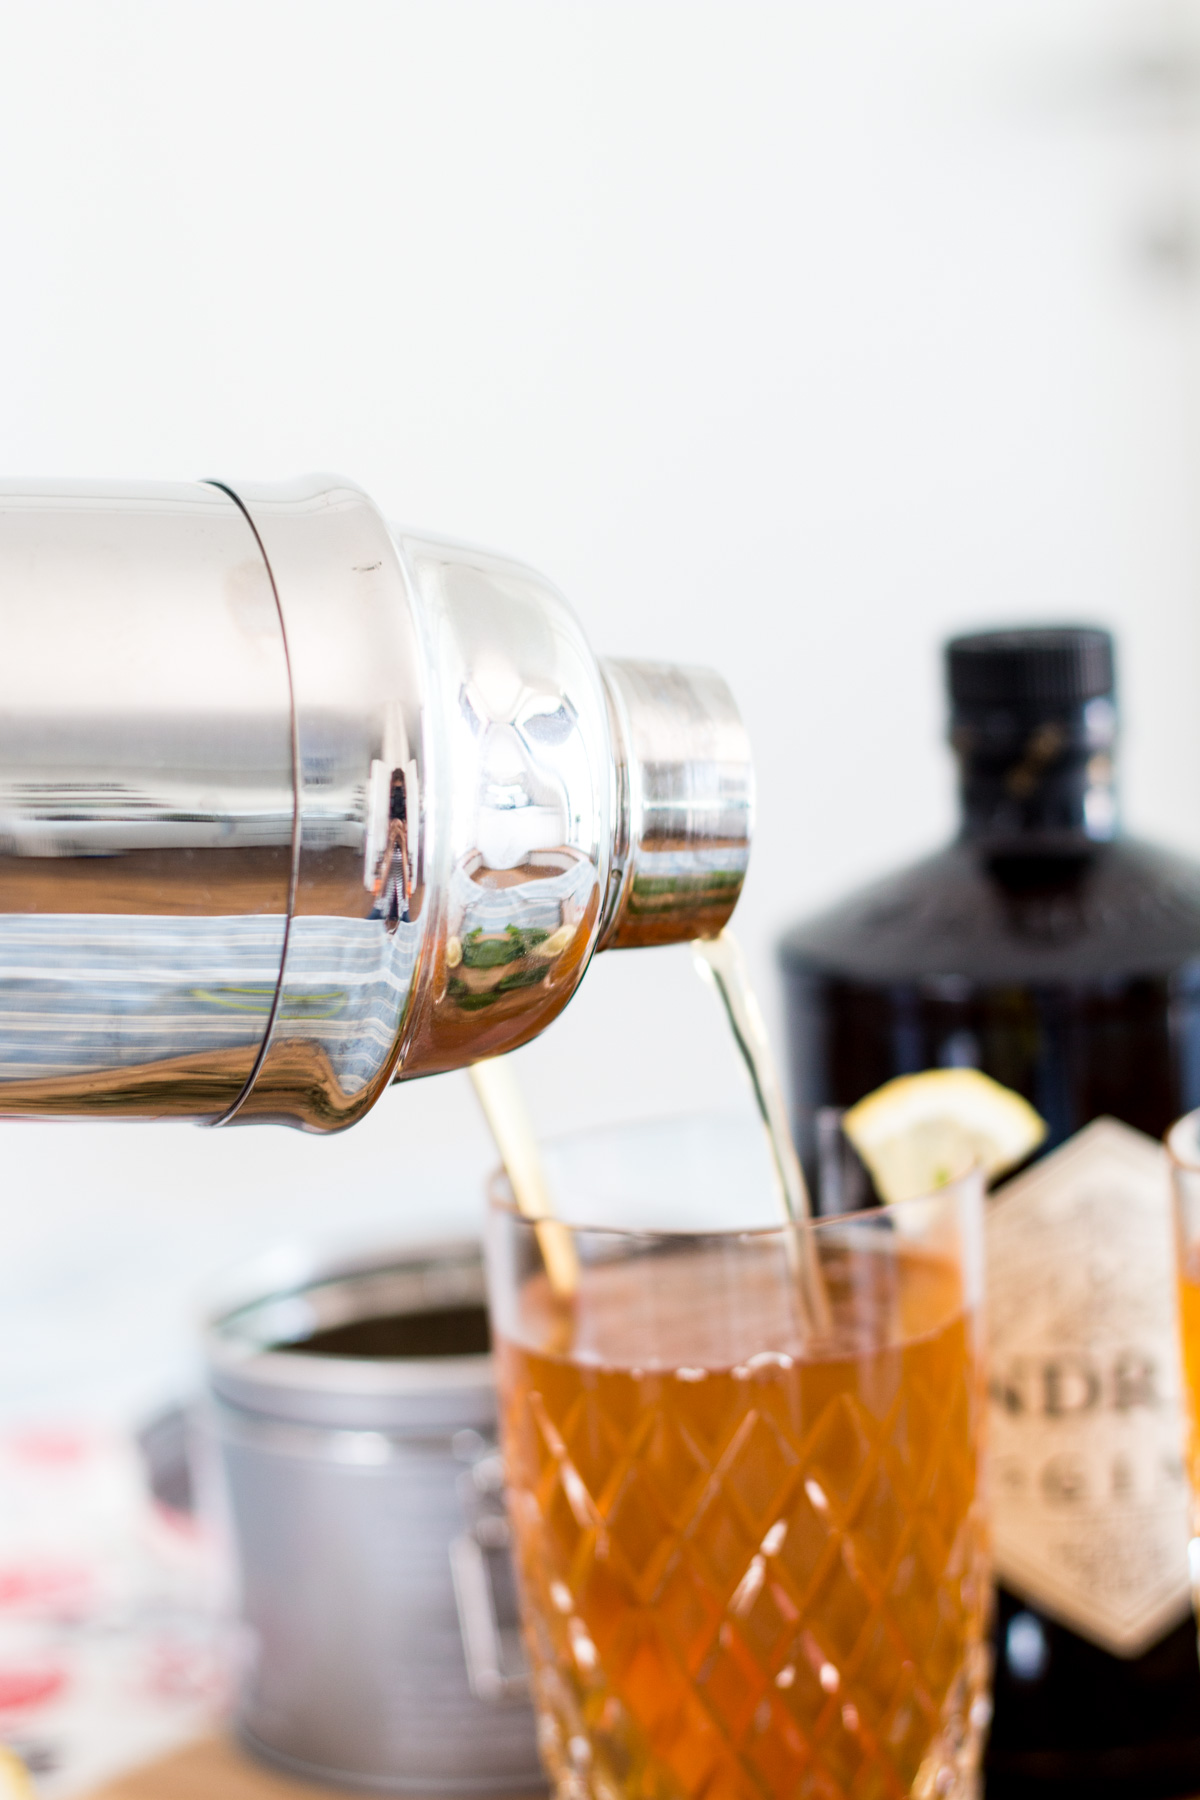 Bubbly Friday: Earl Grey Iced Tea | The Daily Dose